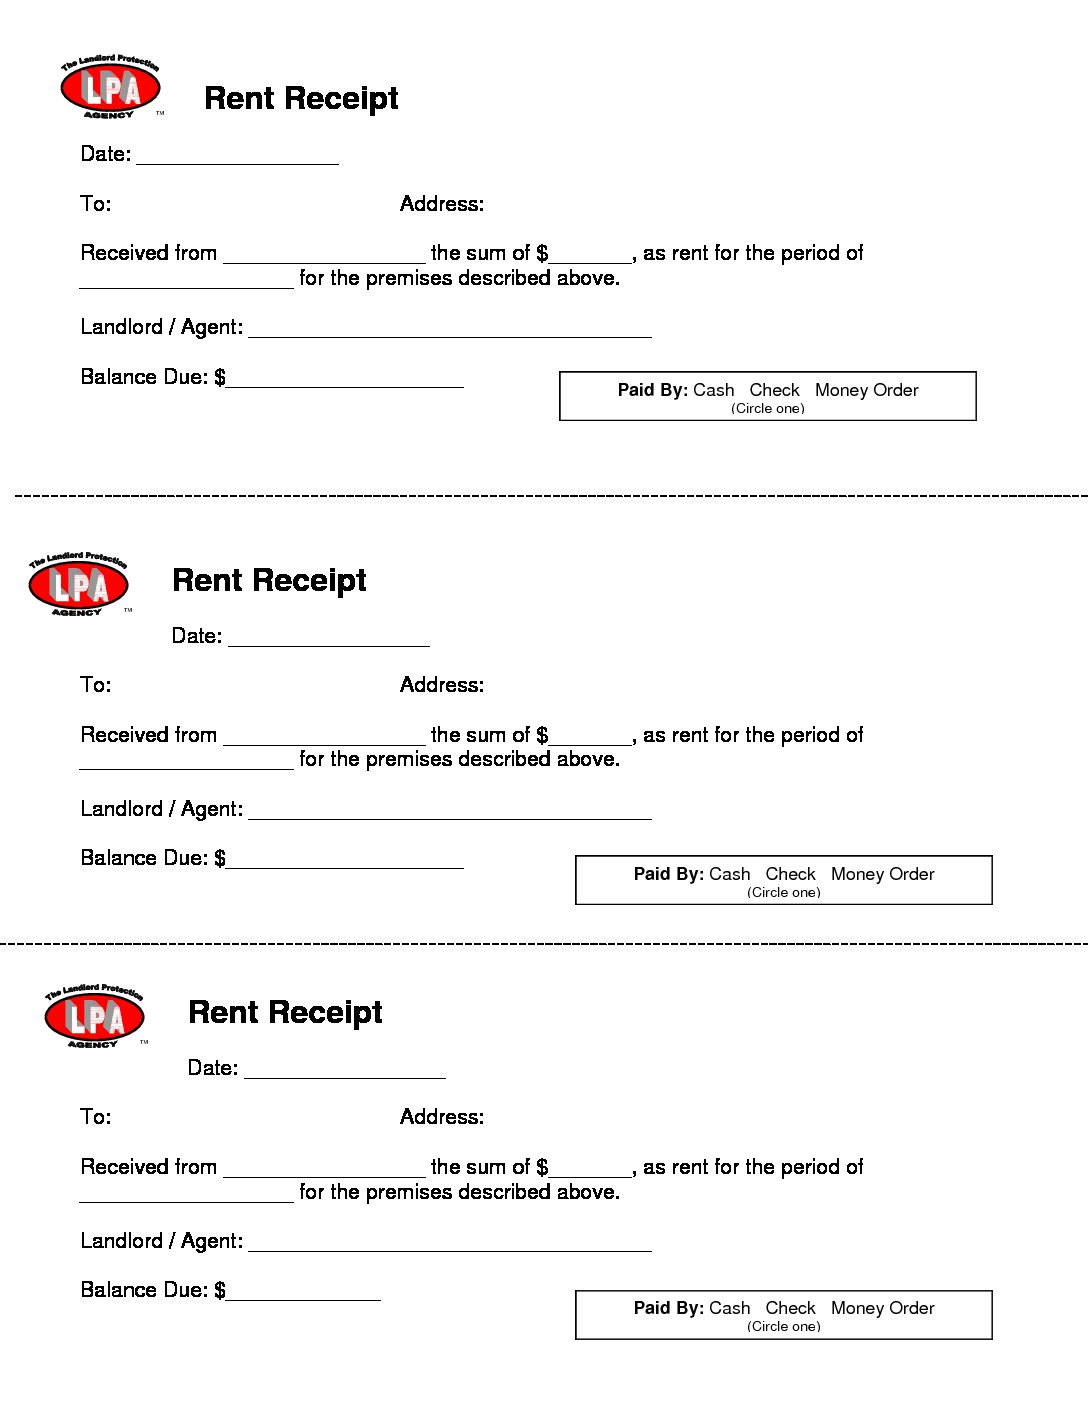 doc rent receipt format rental receipt rent receipt template and what information to include rent receipt format